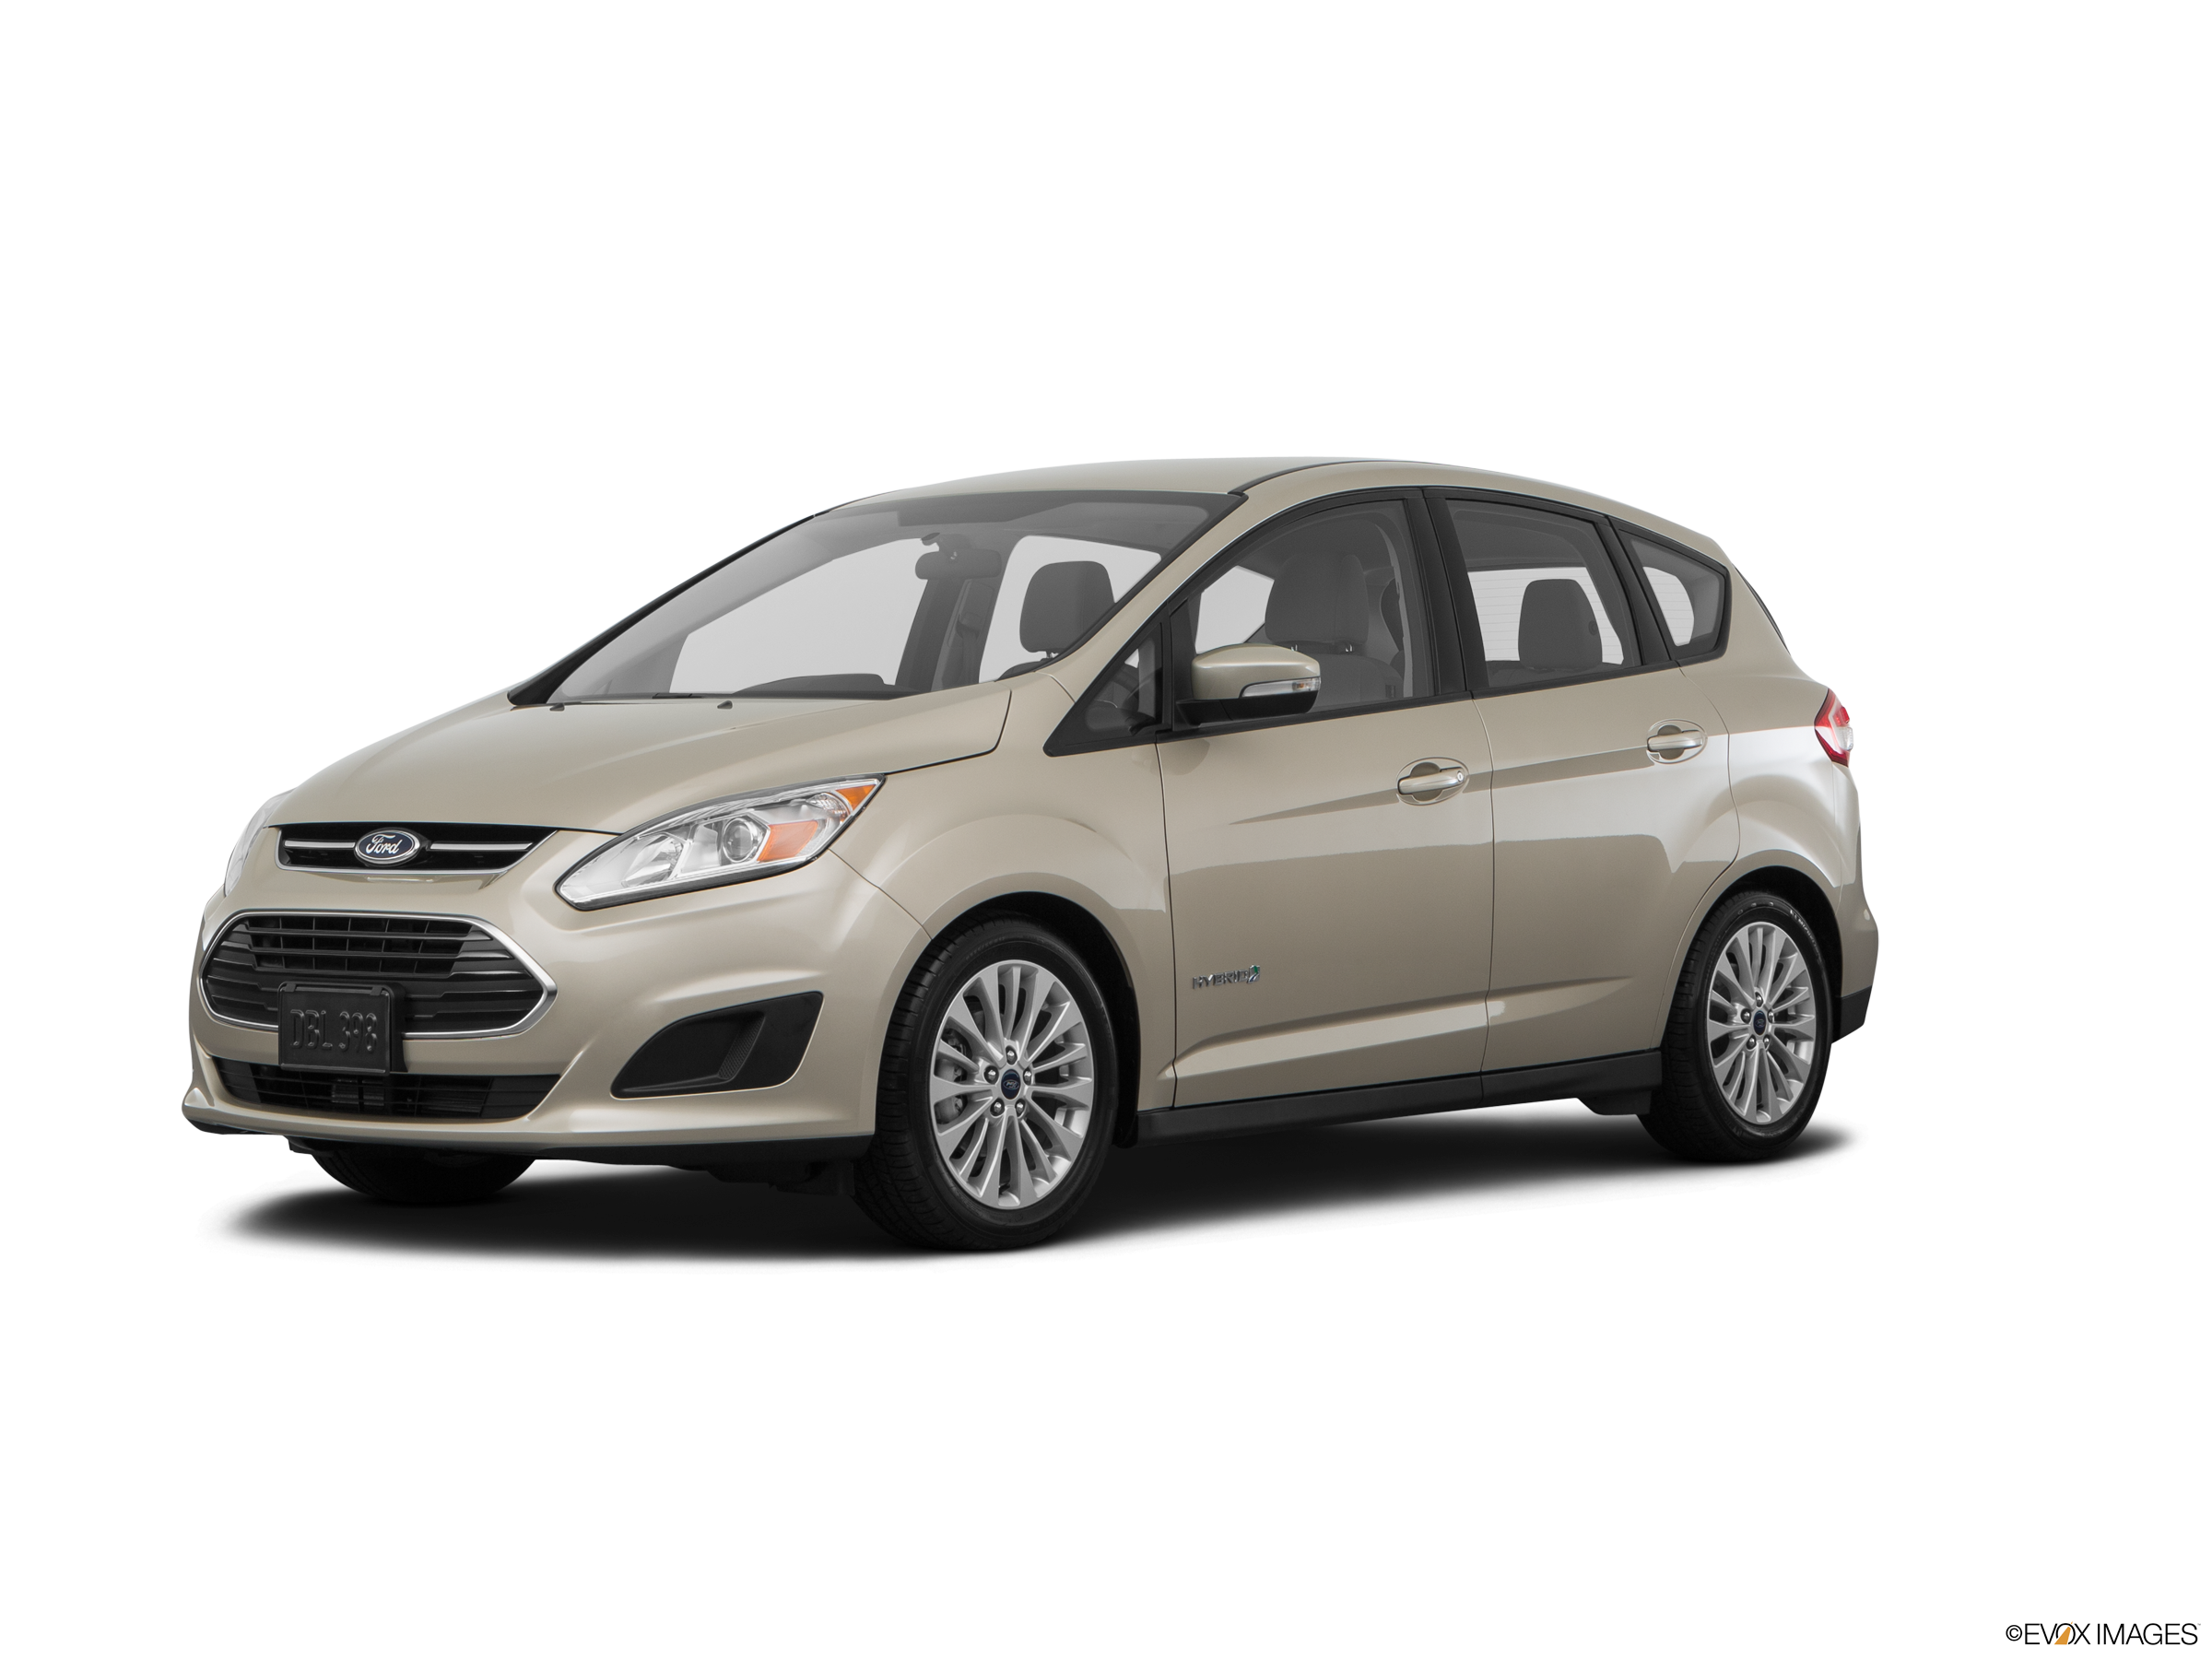 Most Popular Hybrids of 2018 - 2018 Ford C-MAX Hybrid